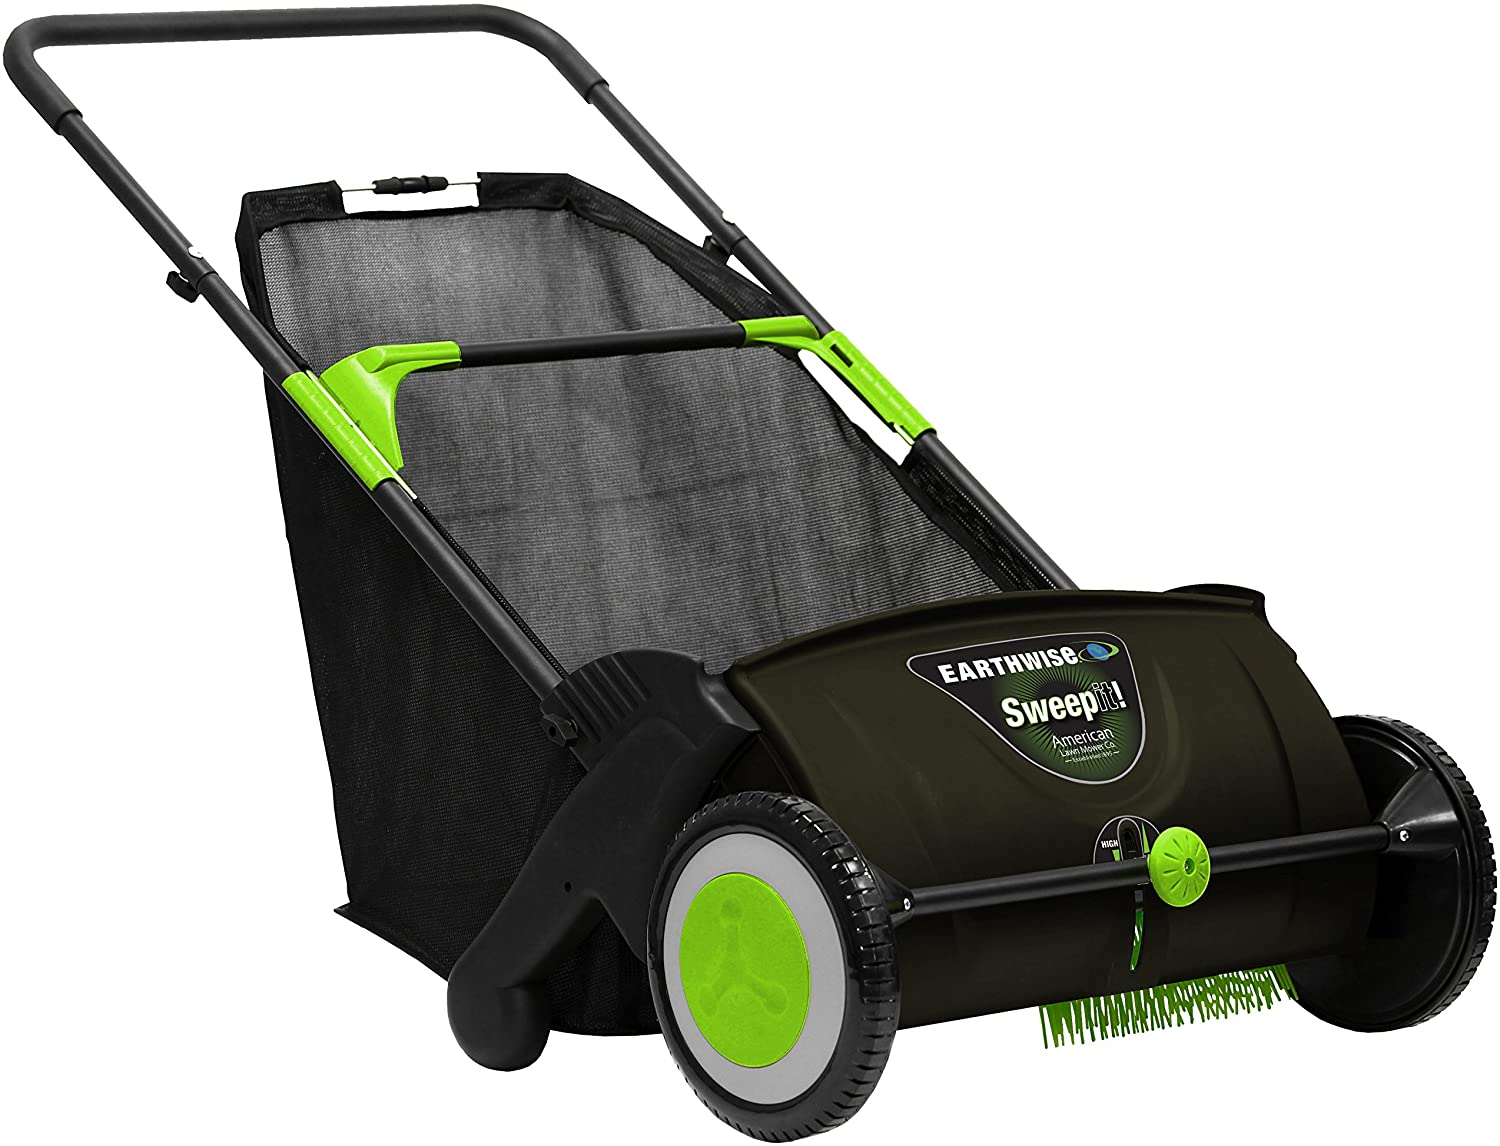 Earthwise Push Lawn Sweeper